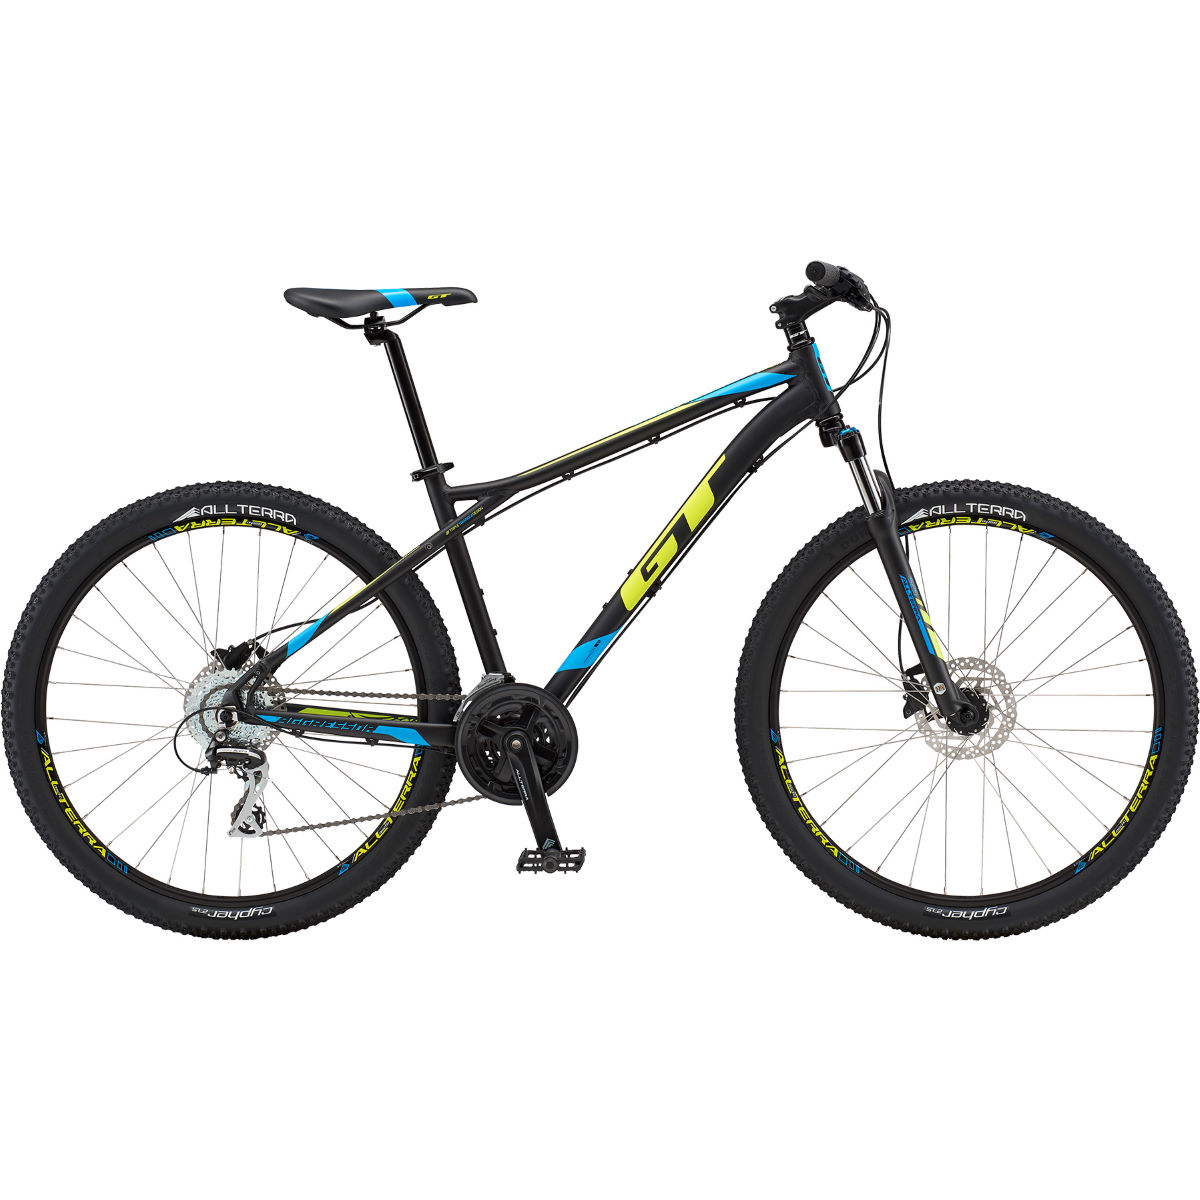 VTT semi-rigide GT Aggressor Expert 27.5 - Large Stock Bike Noir